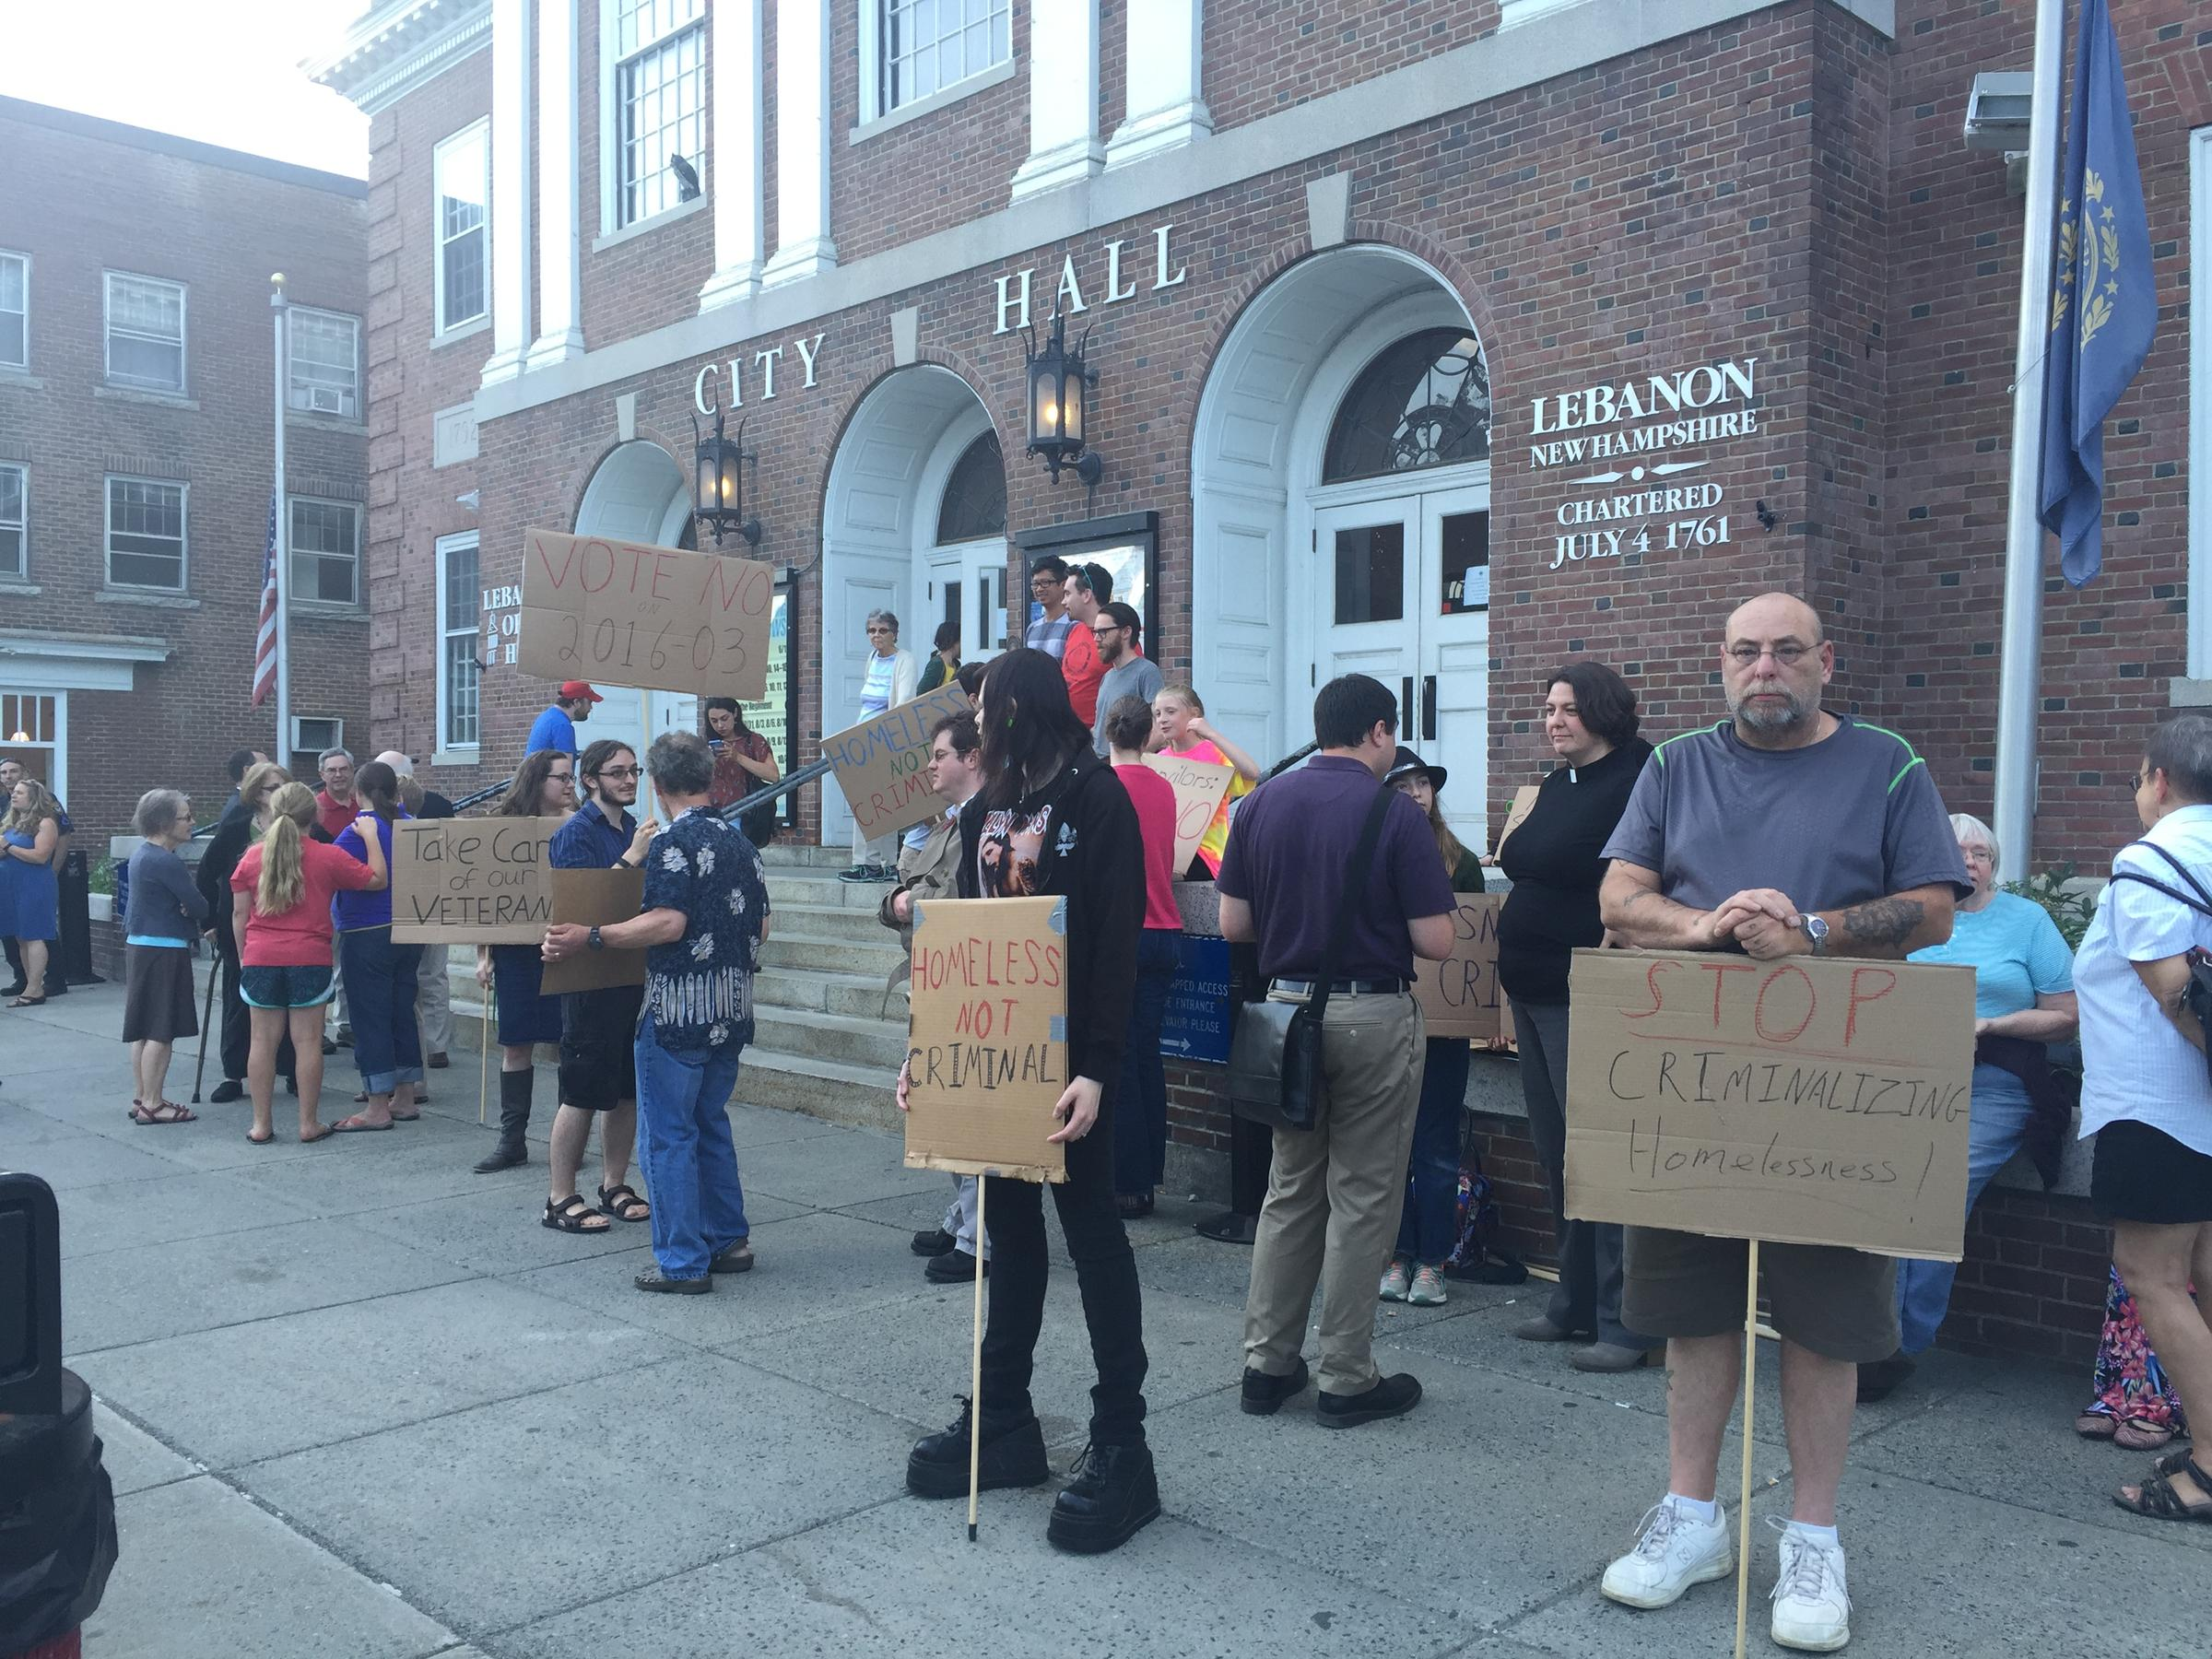 City manager government card - Protestors Gathered Outside City Hall In Lebanon N H Wednesday Ahead Of A City Council Meeting